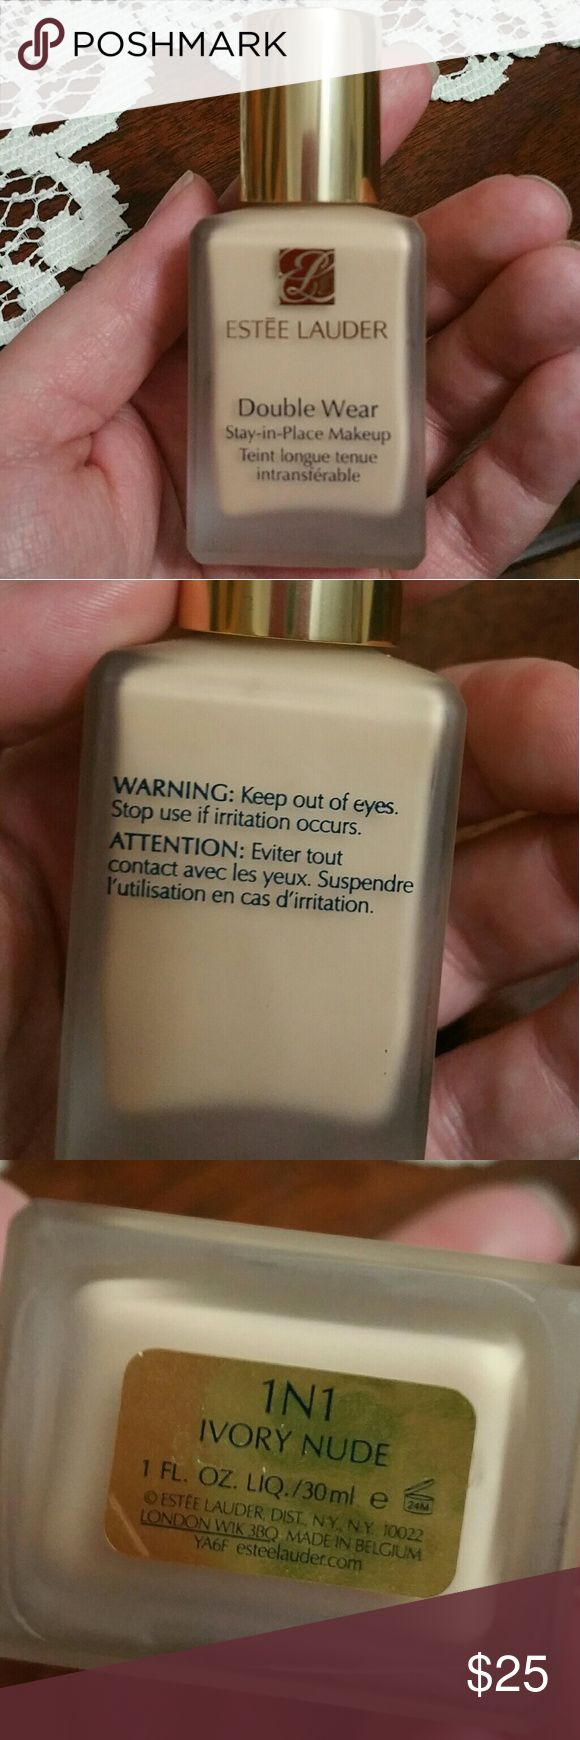 Estee Lauder Double Wear Stay-in-Place Foundation Shade 1N1 Ivory Nude. Light with yellow undertones. Used 3-4 times. Purchased new from Ulta. No box. Estee Lauder Makeup Foundation